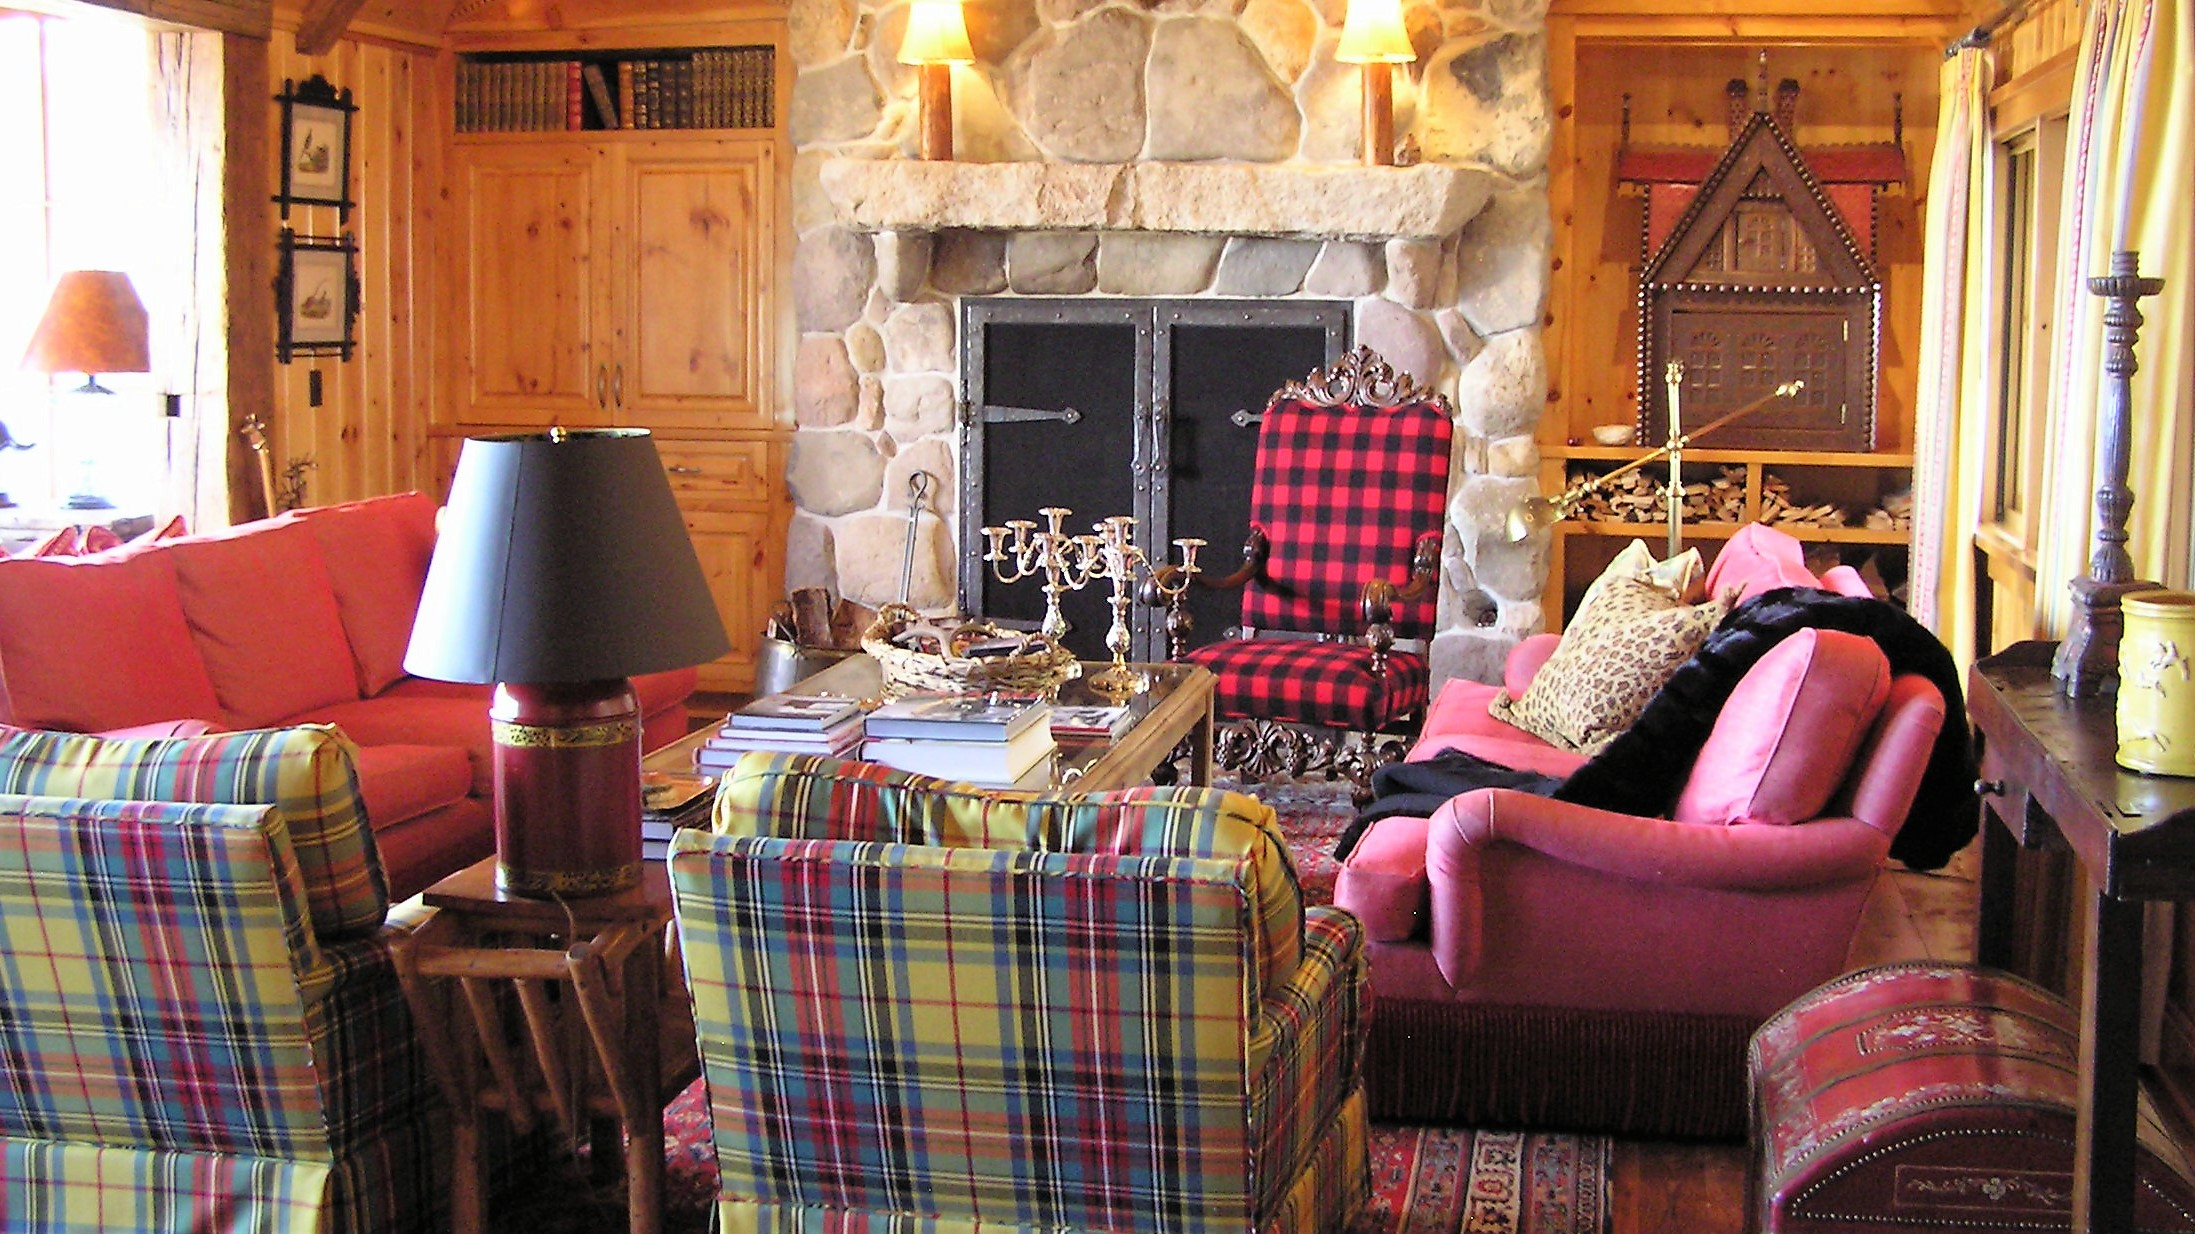 Beautiful rustic cabin furnishings selected by our in-house interior designer.